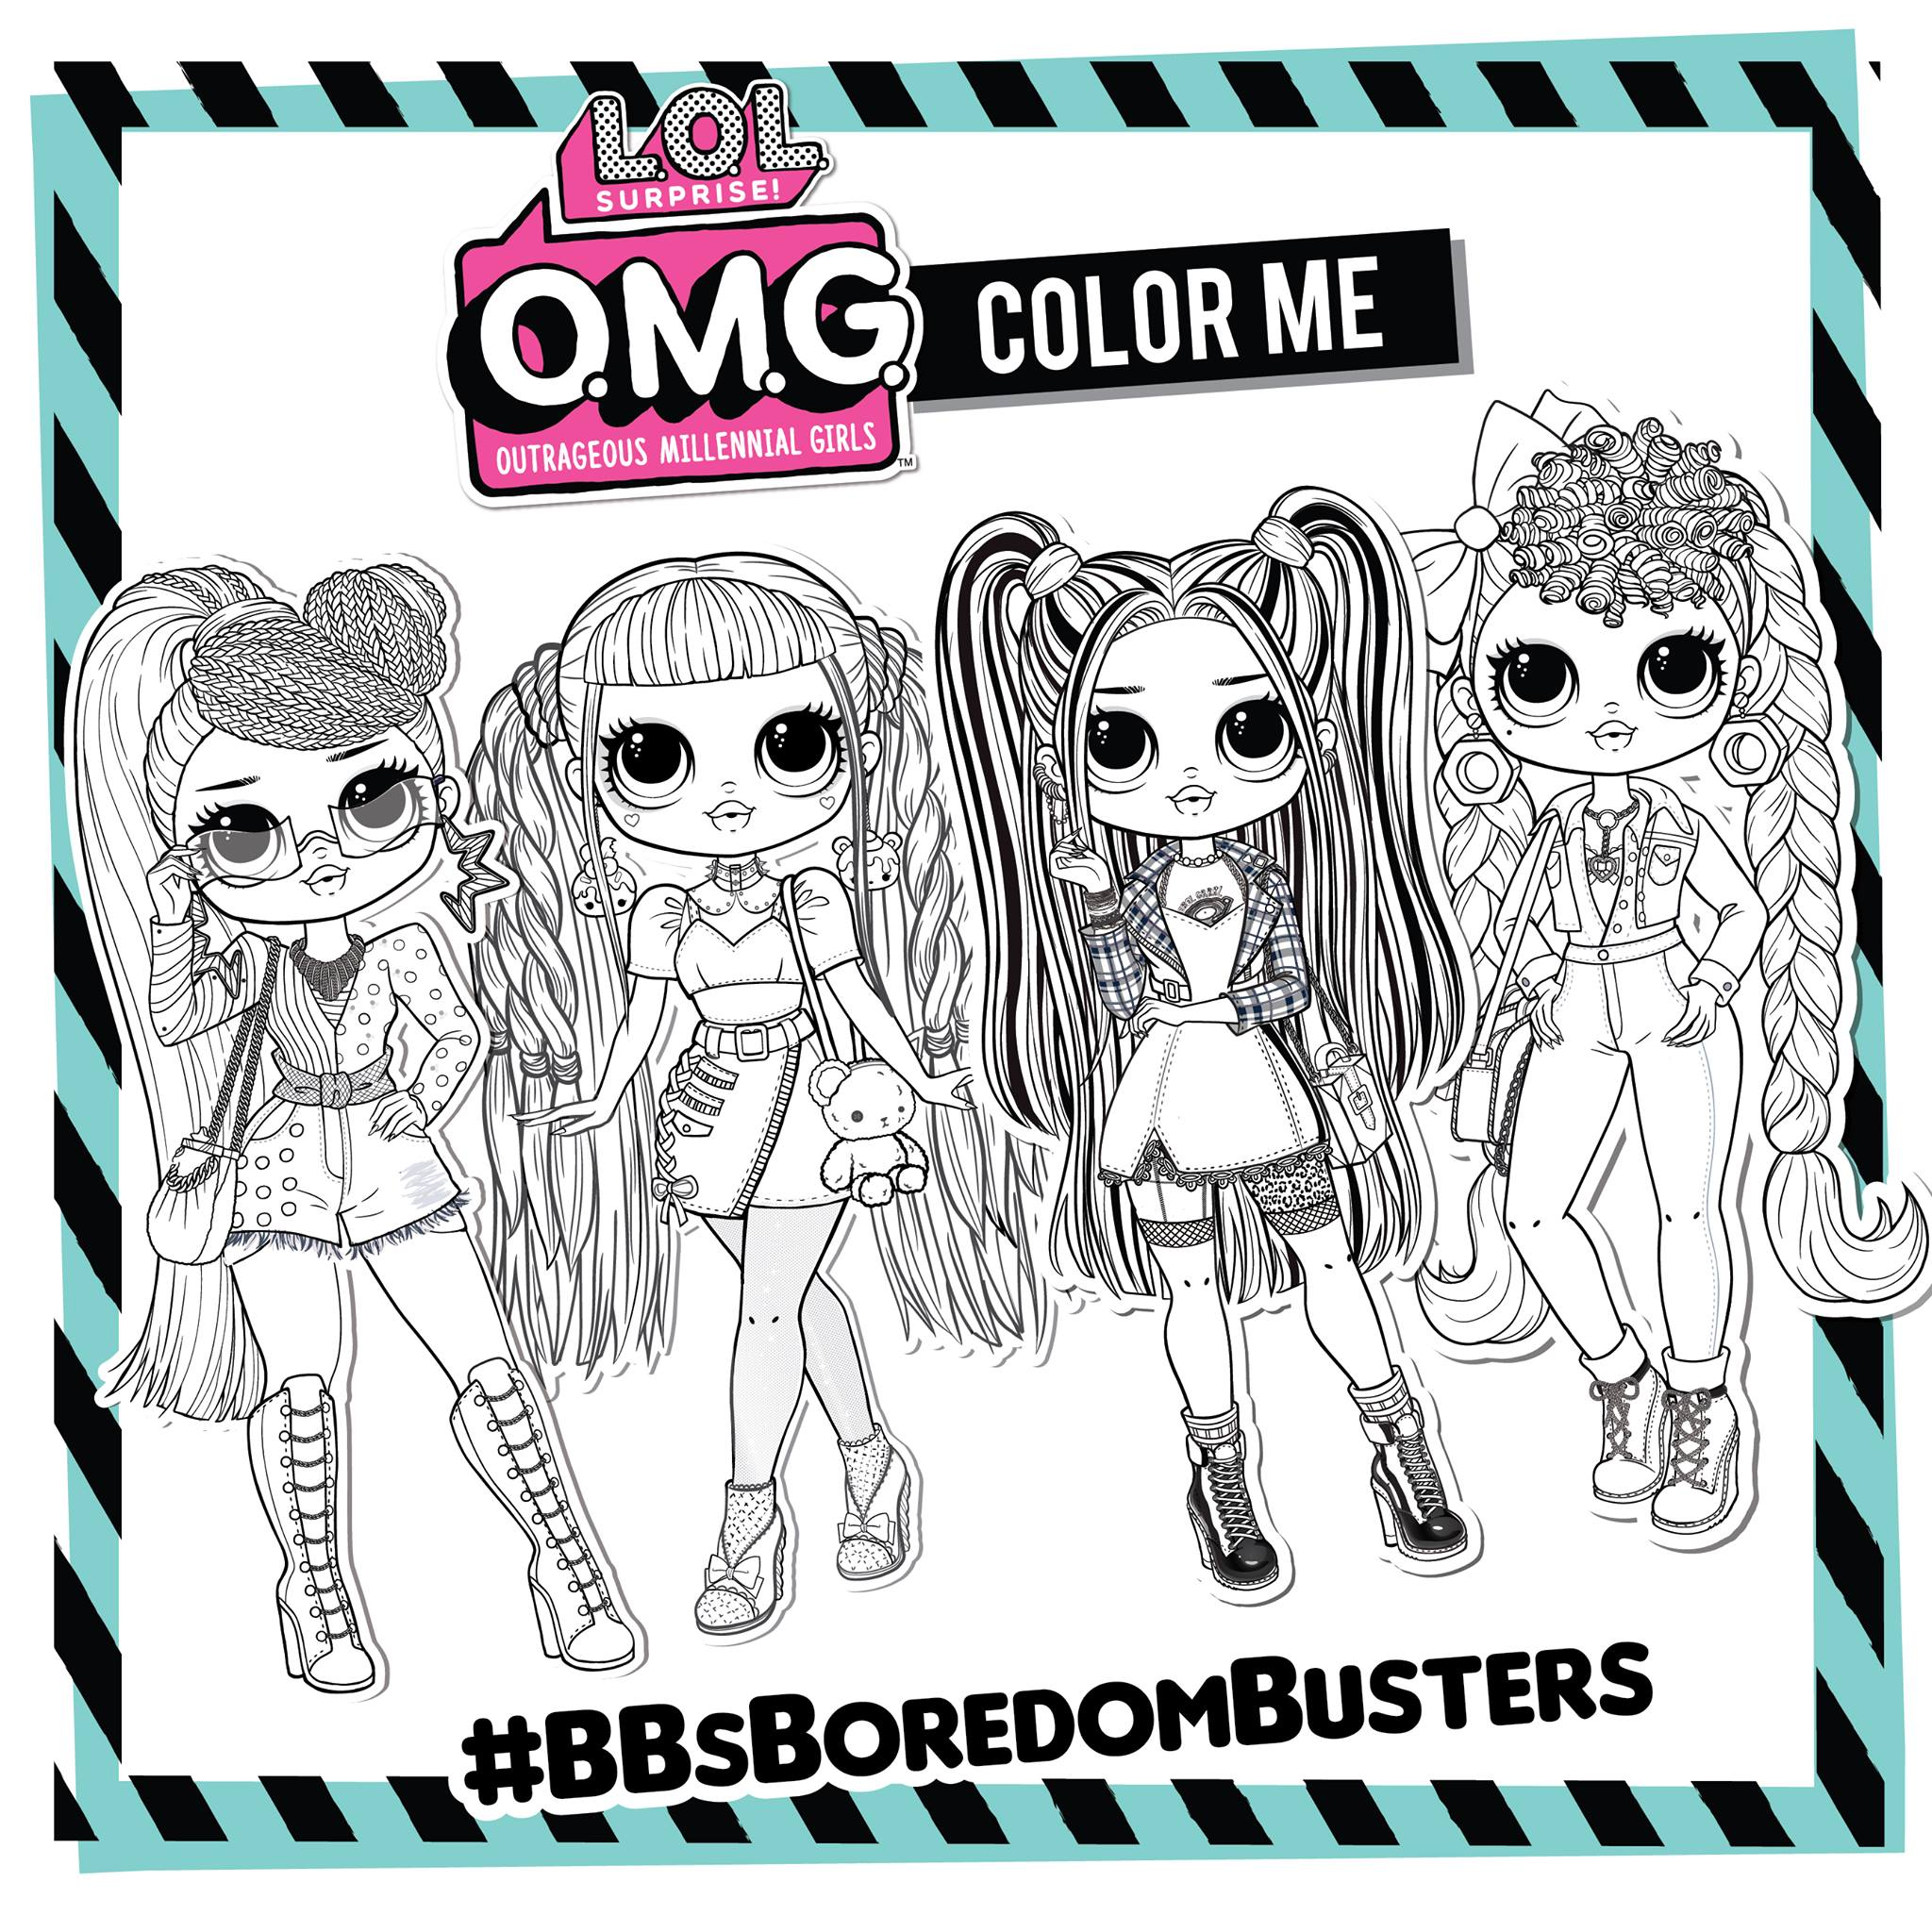 LOL OMG coloring pages - YouLoveIt.com